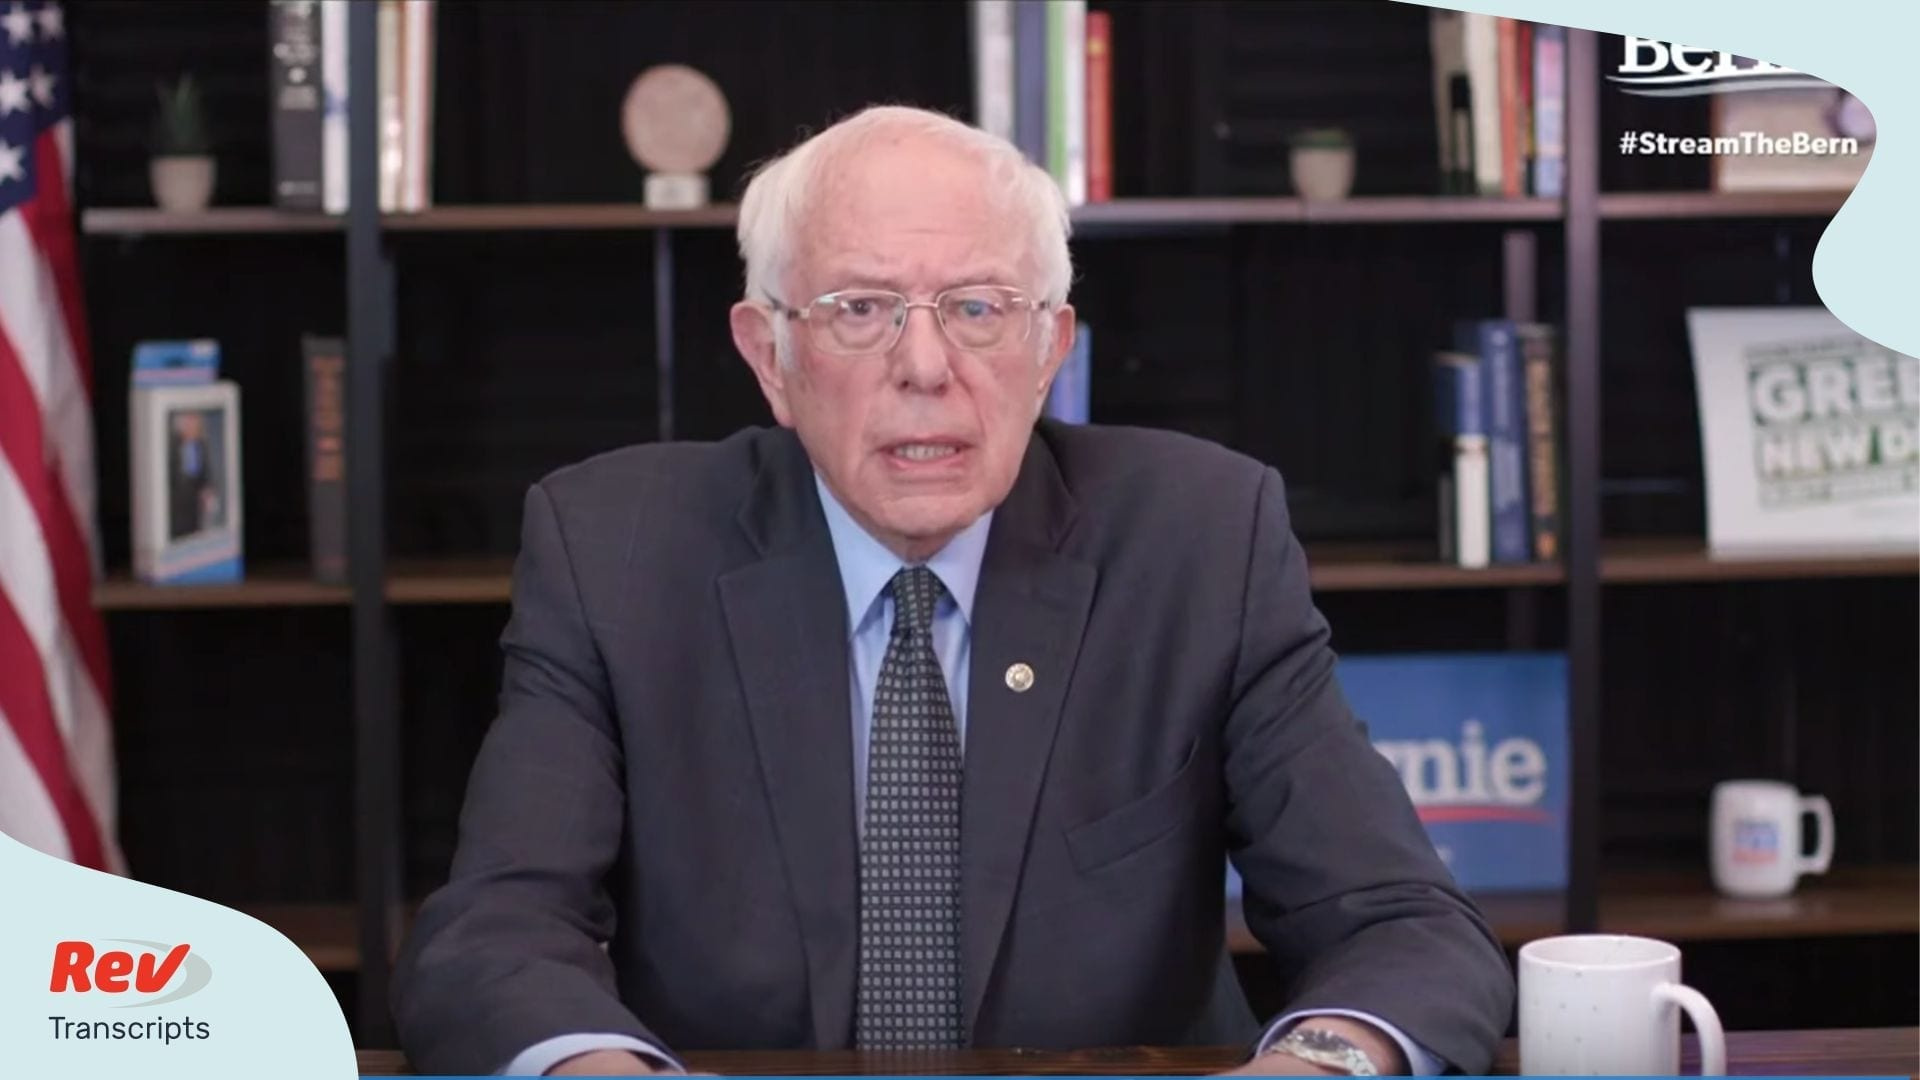 Bernie Sanders Coronavirus address Primary Night Transcript